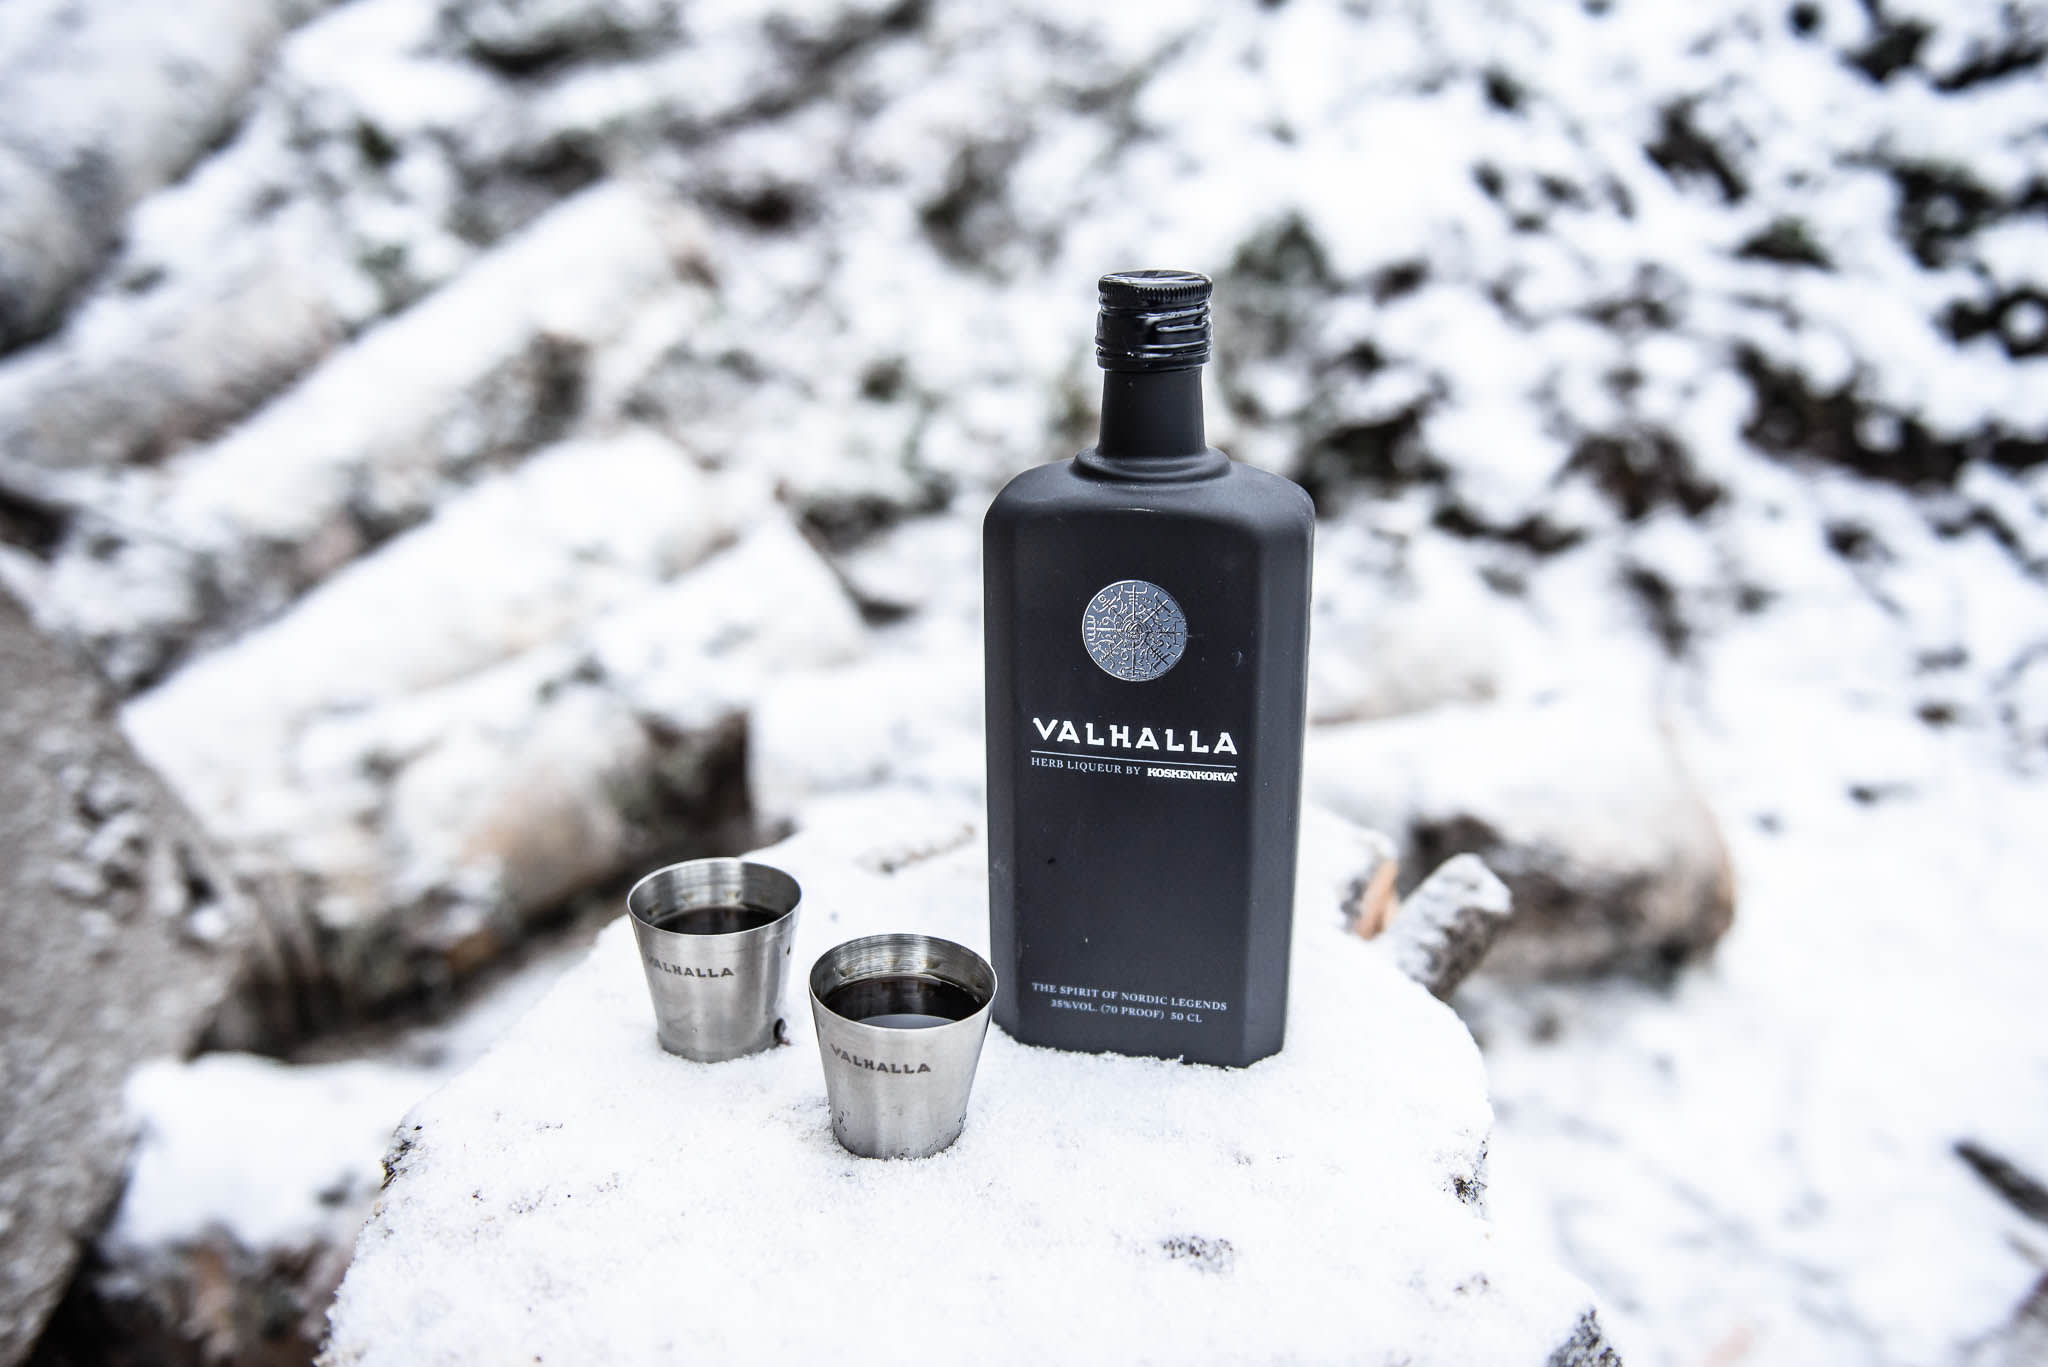 Valhalla bottle with two shot glasses